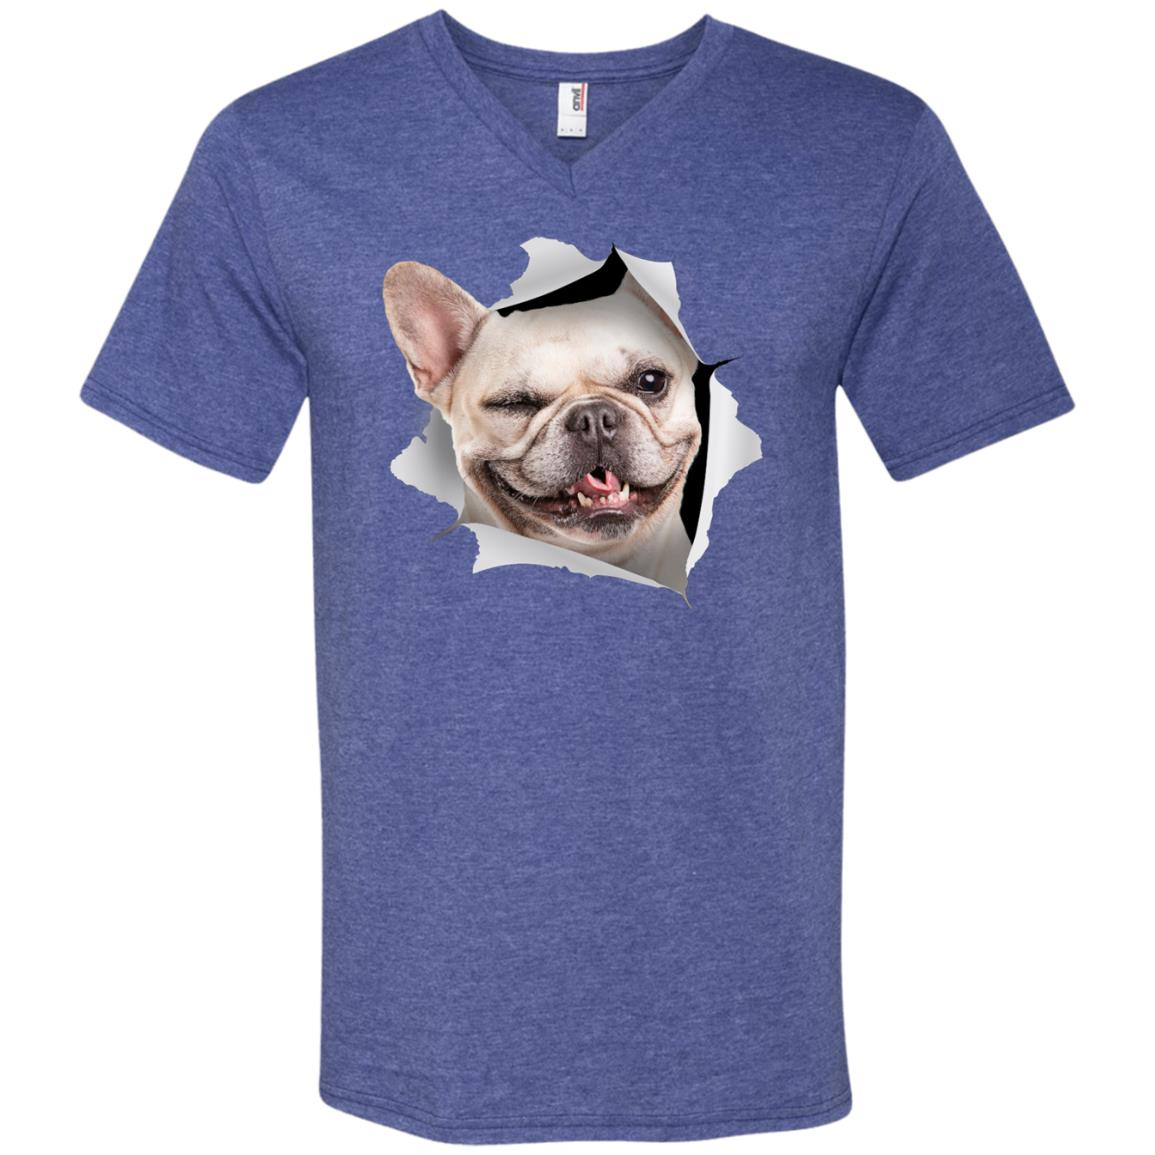 Winking Frenchie Men's Printed V-Neck T-Shirt